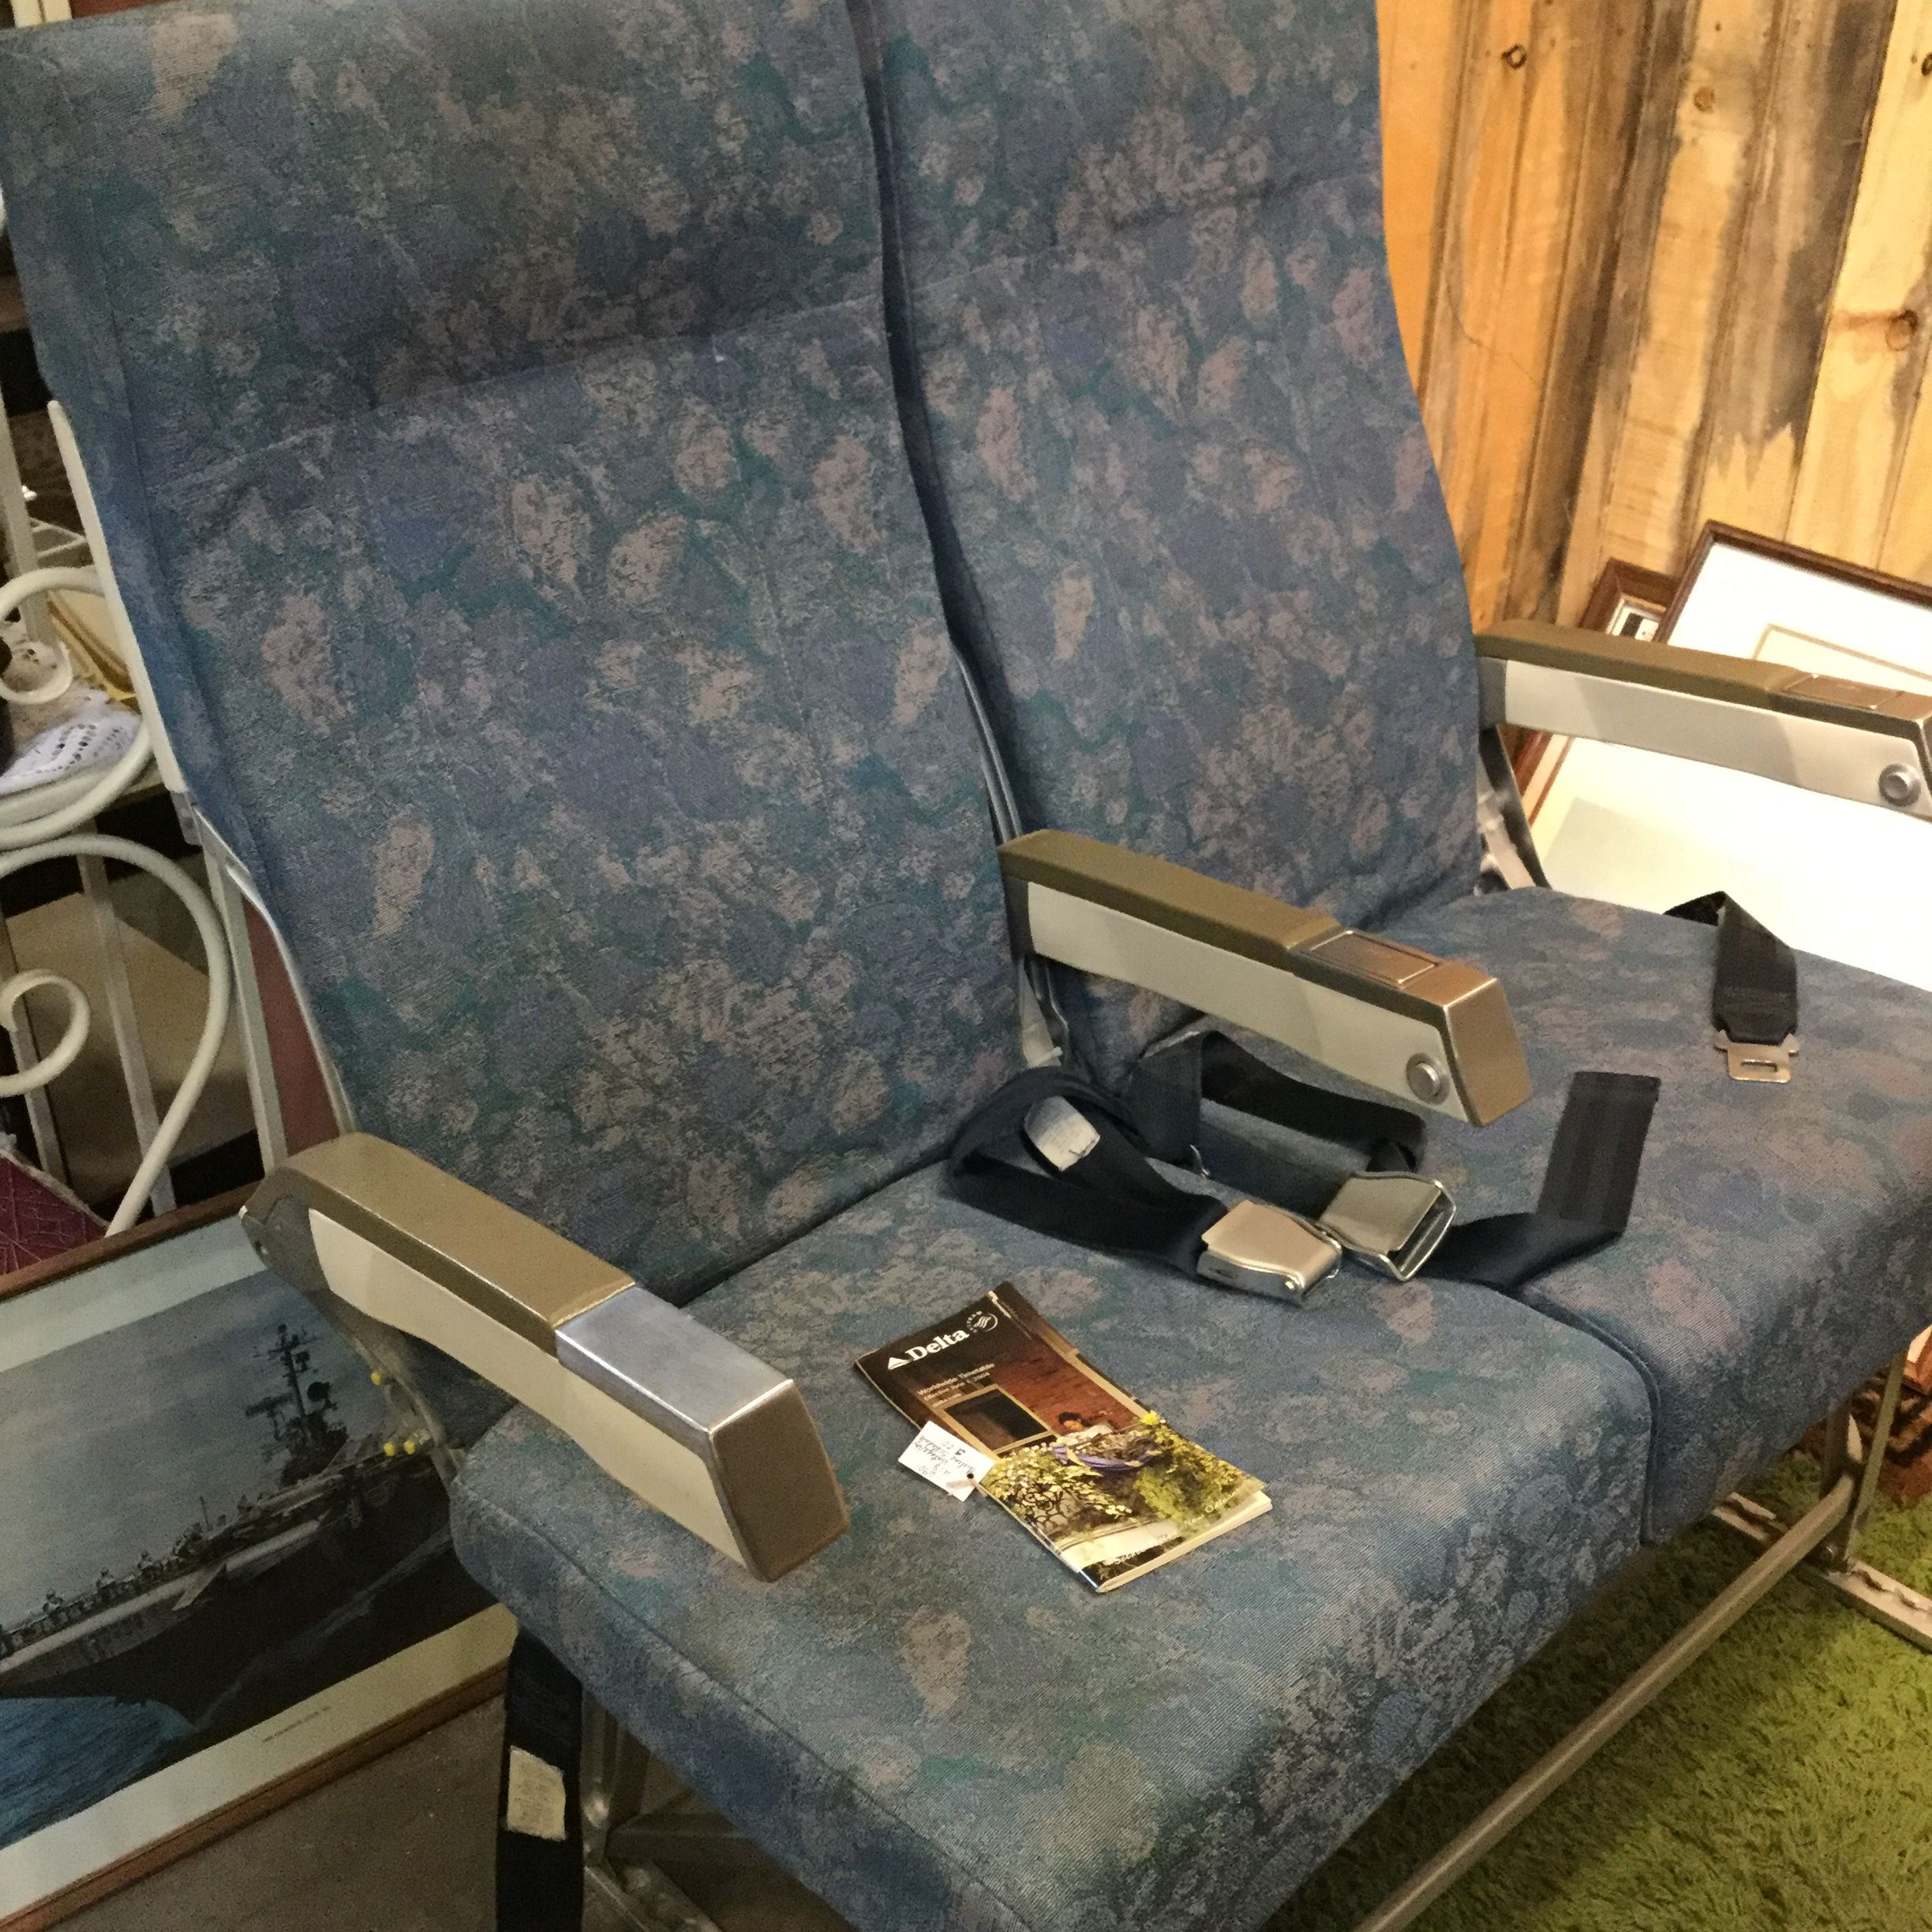 Vintage airline seats--with ash trays and fold down trays on the seat back. Who needs a recliner? $450 for the pair in Booth 28